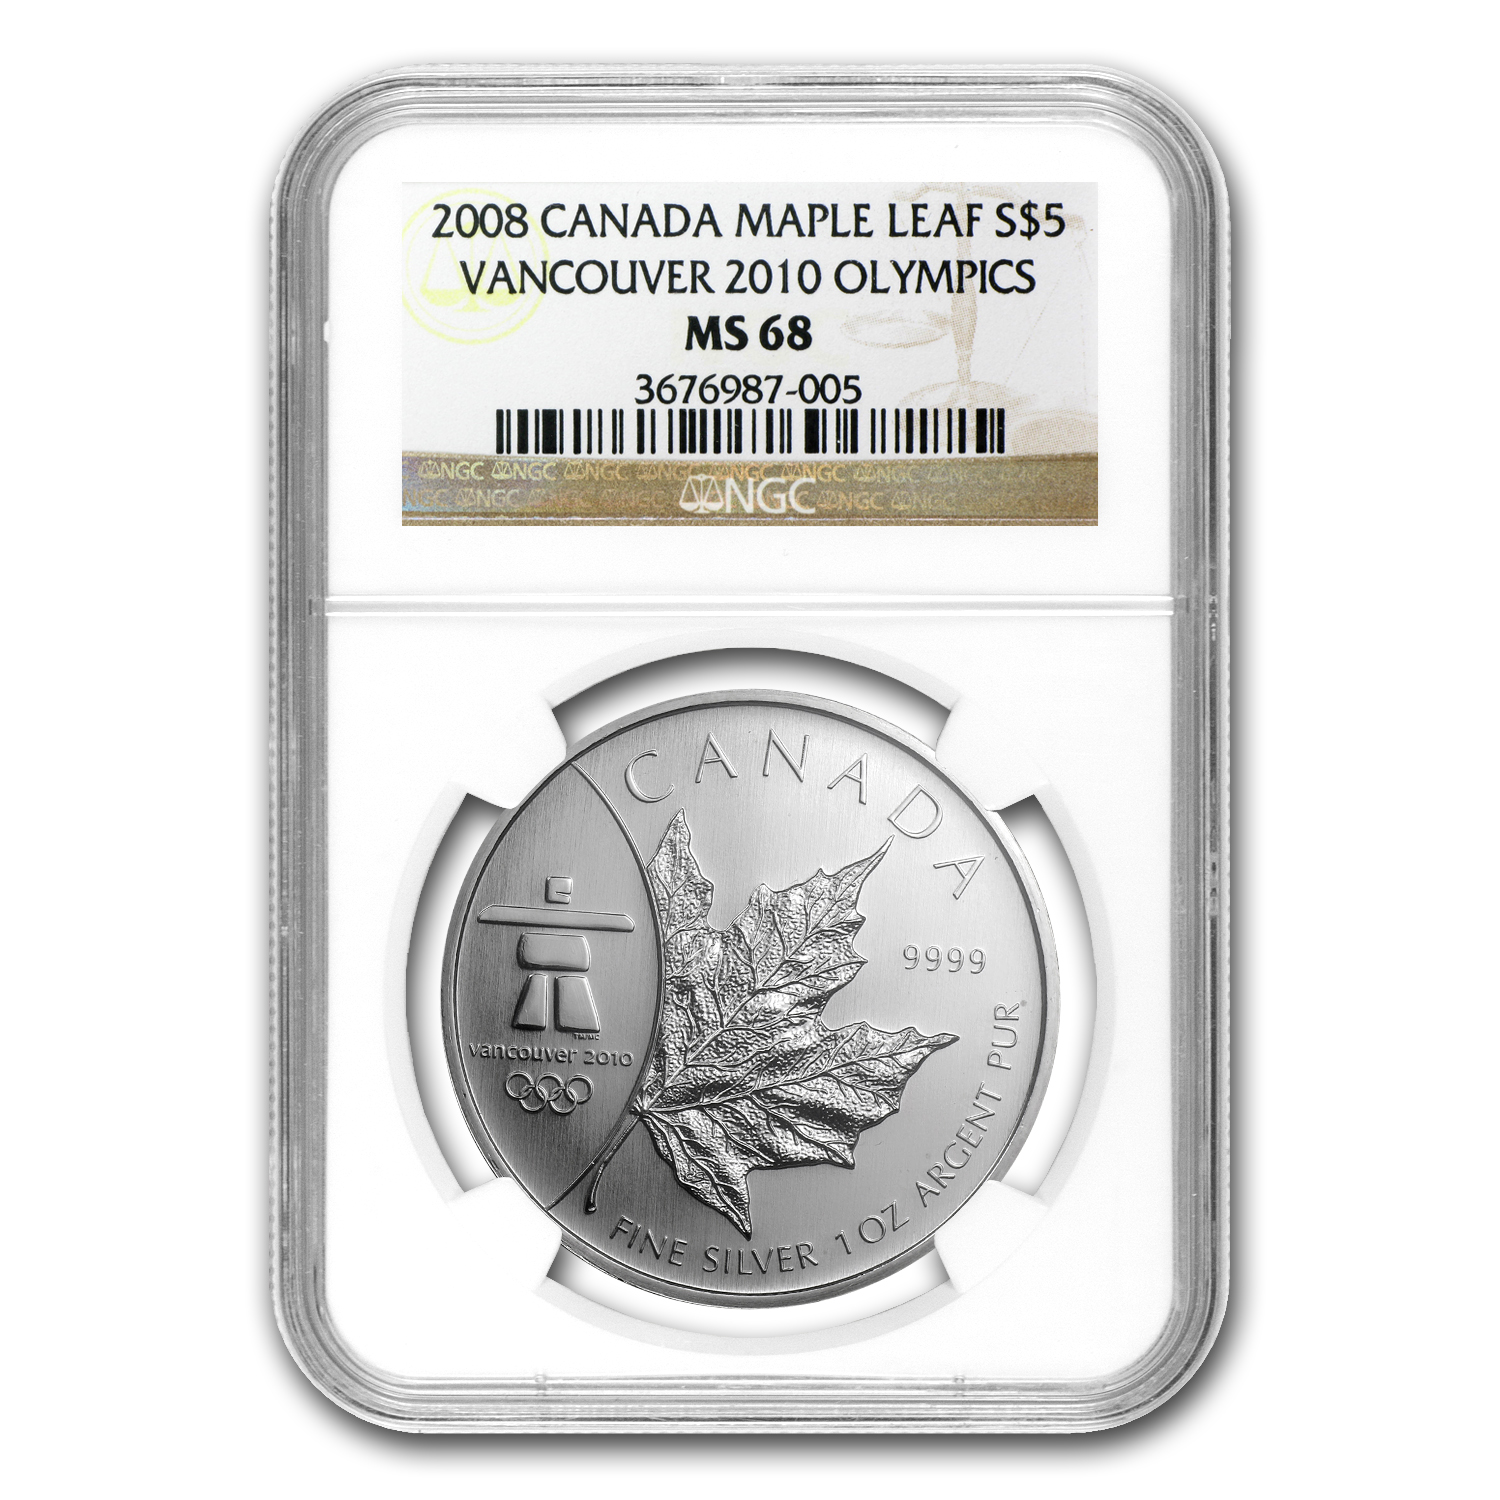 2008 Canada 1 oz Silver Maple Leaf MS-68 NGC (Vancouver)